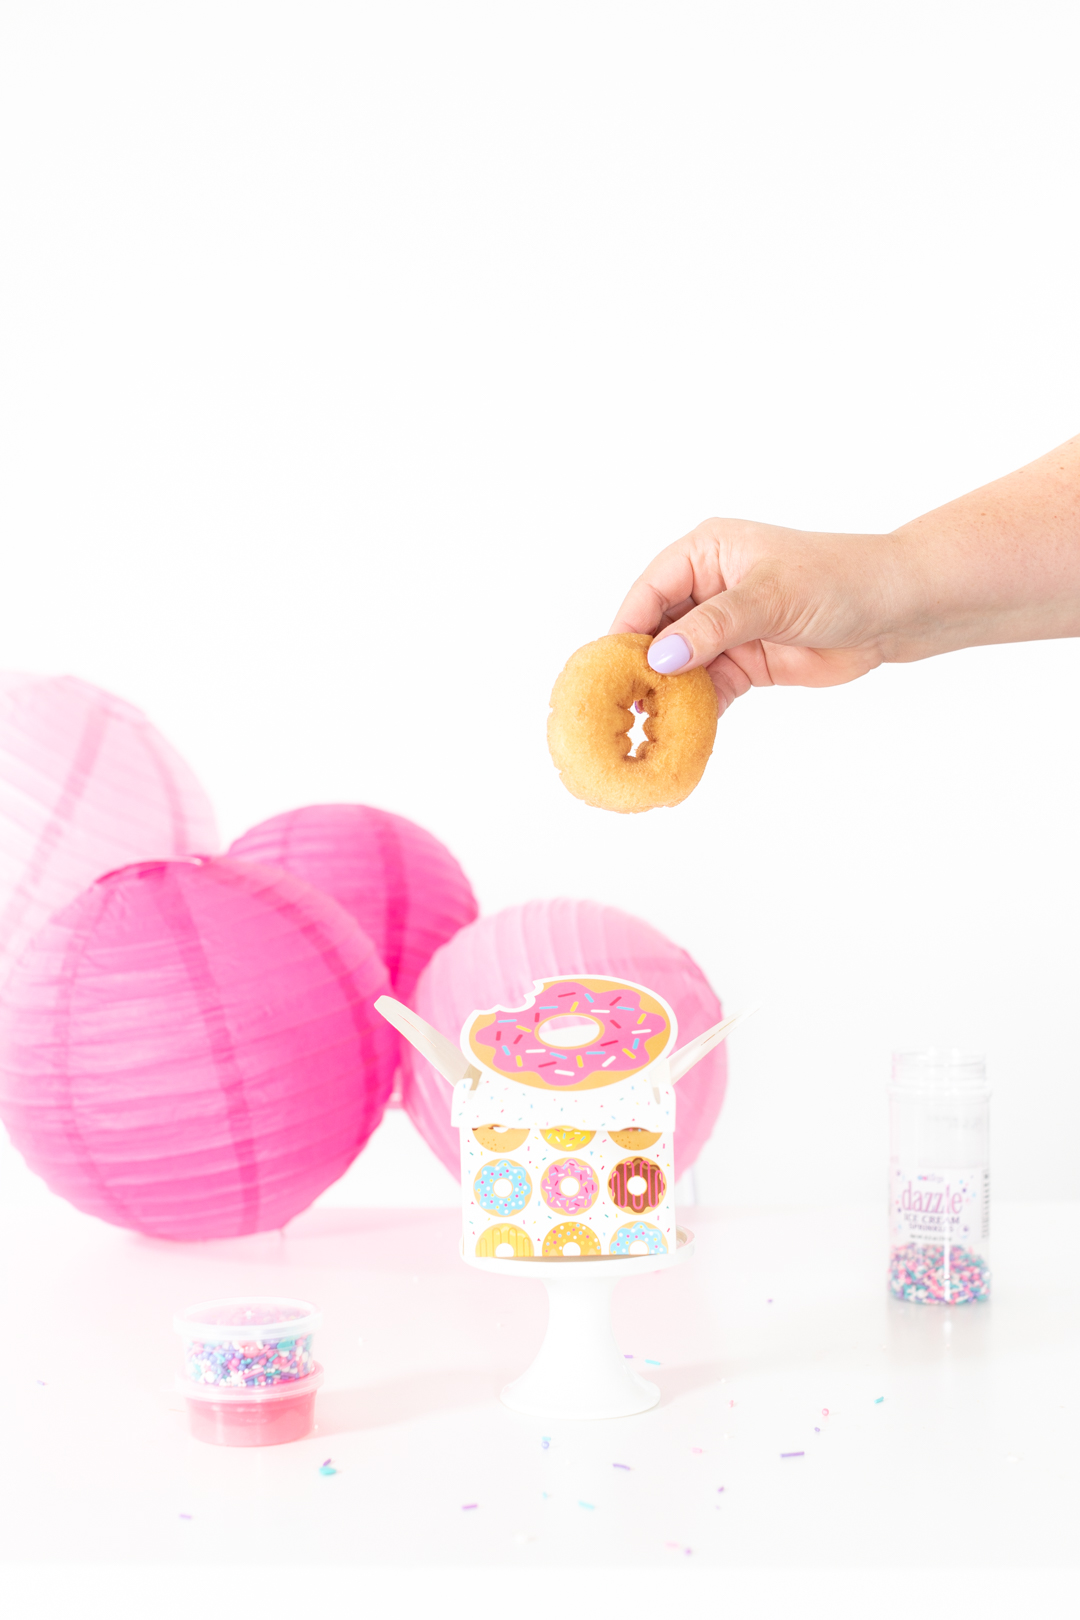 adding donut to a donut favor box